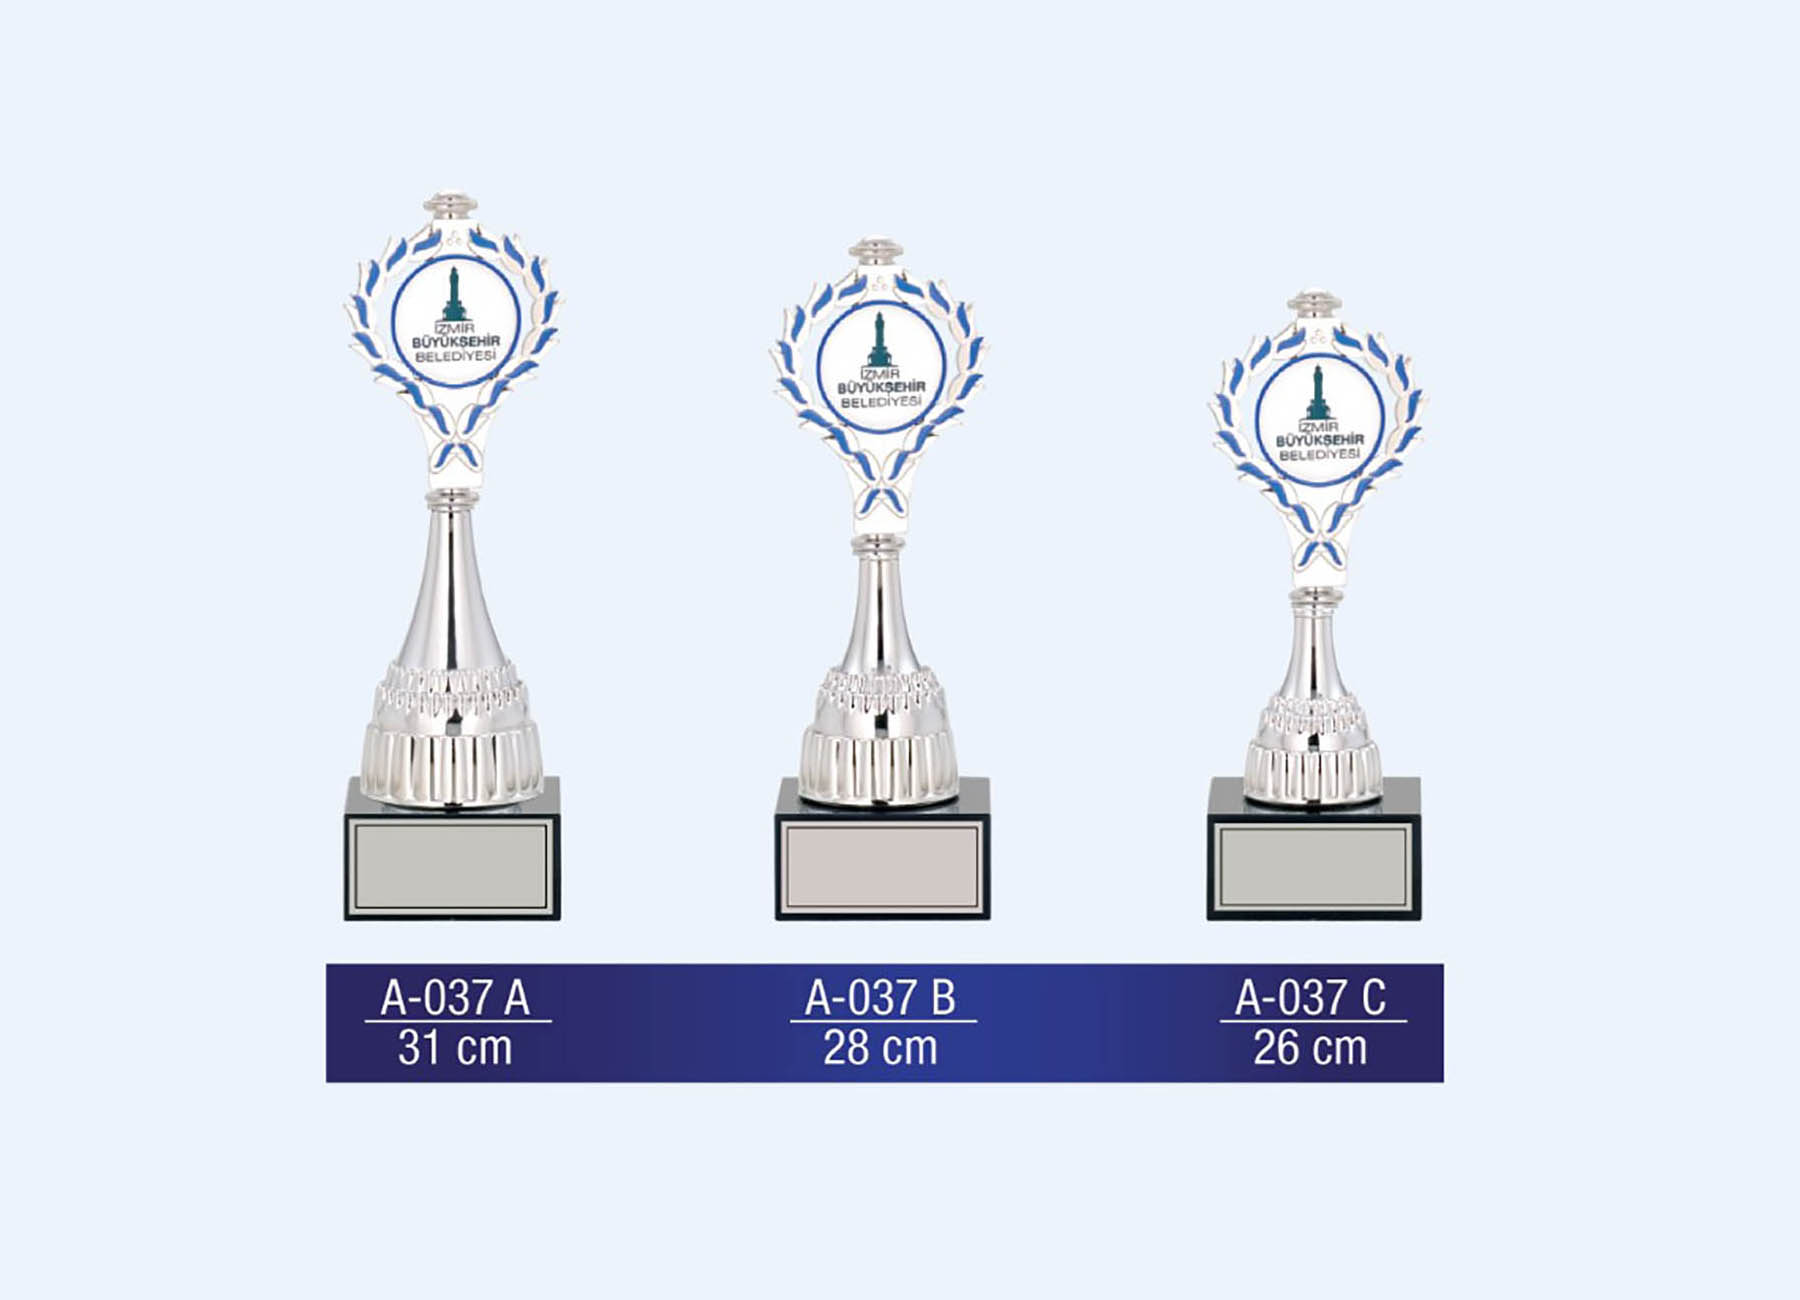 A-037 General Cups